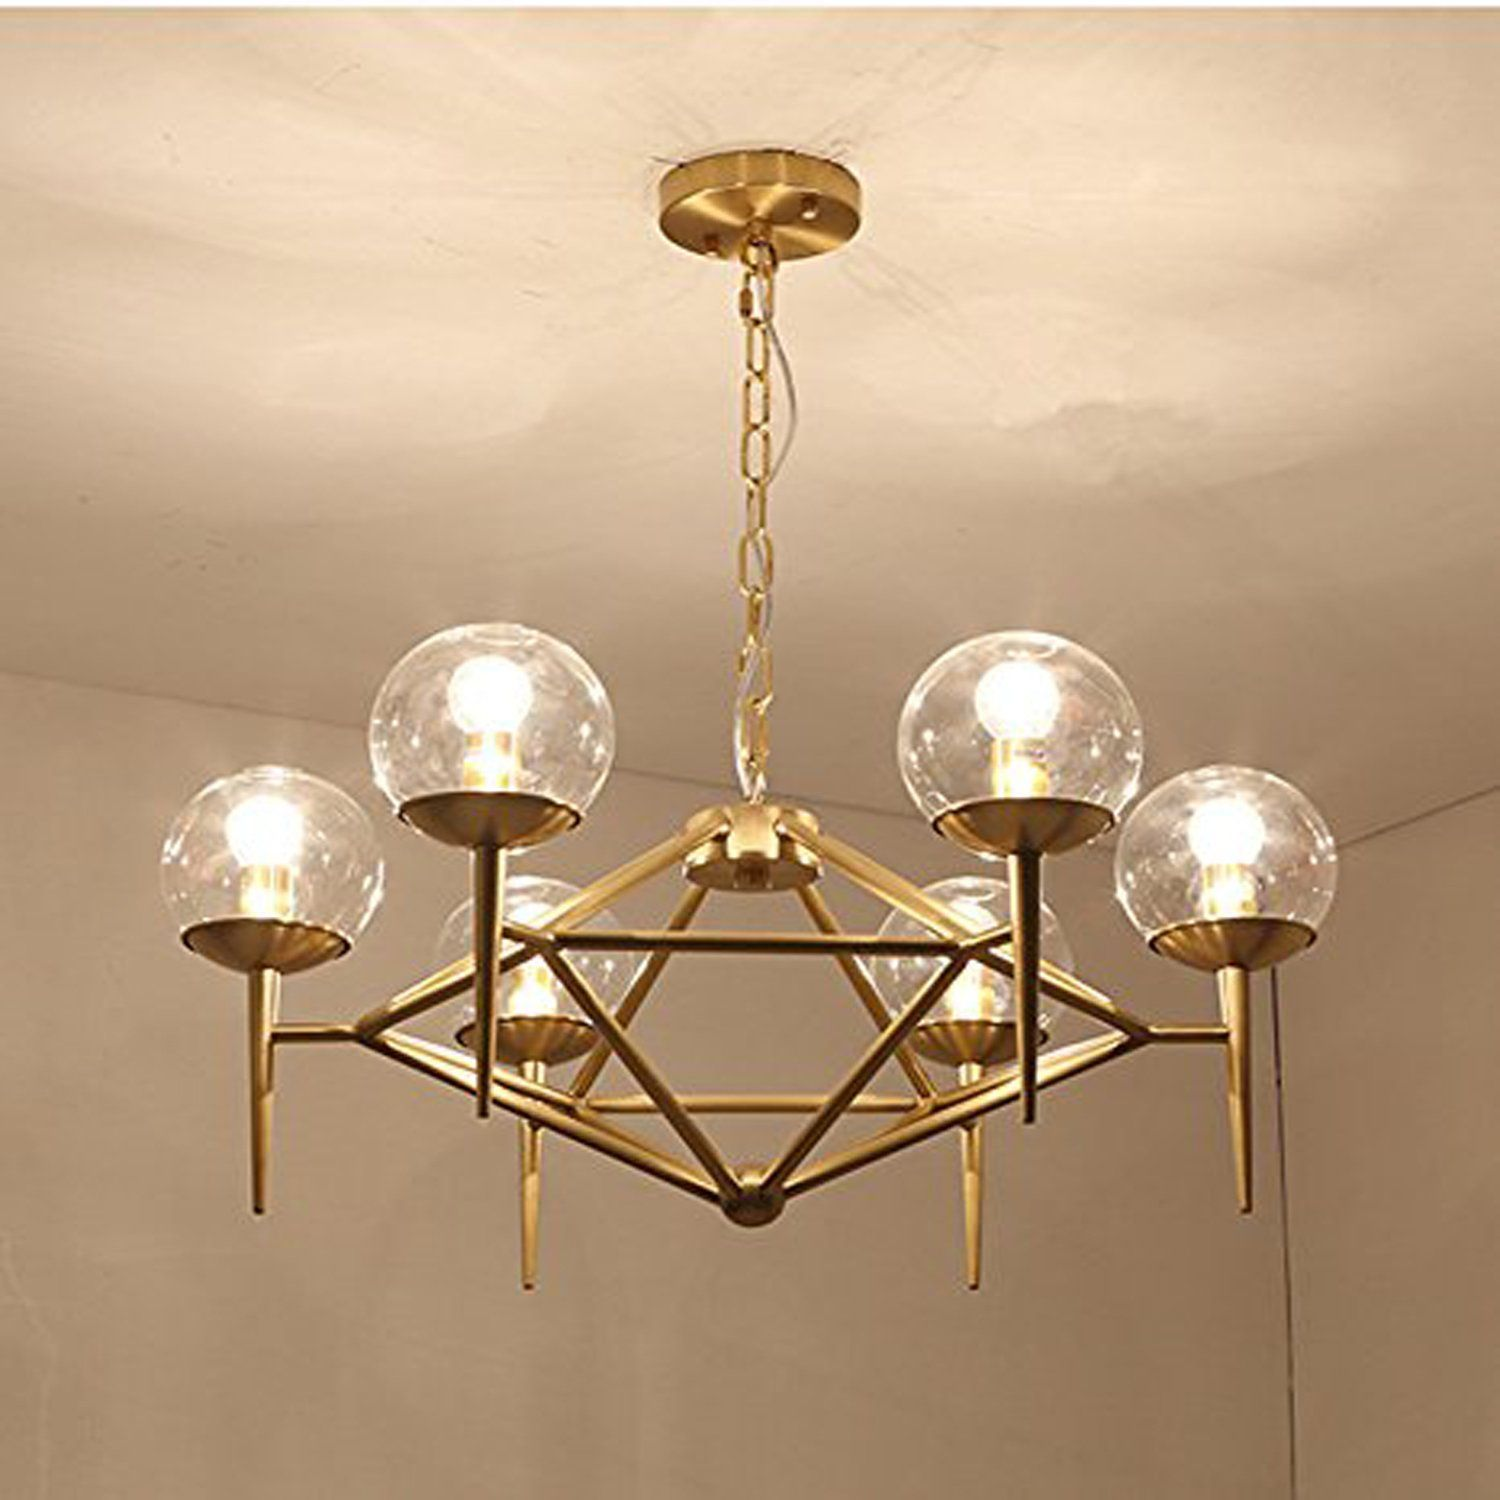 Modern Round Glass Ball Chandelier Creative Metal Pendant Lighting Gold Industry Ceiling Ligh Pendant Lighting Dining Room Gold Pendant Lighting Led Chandelier